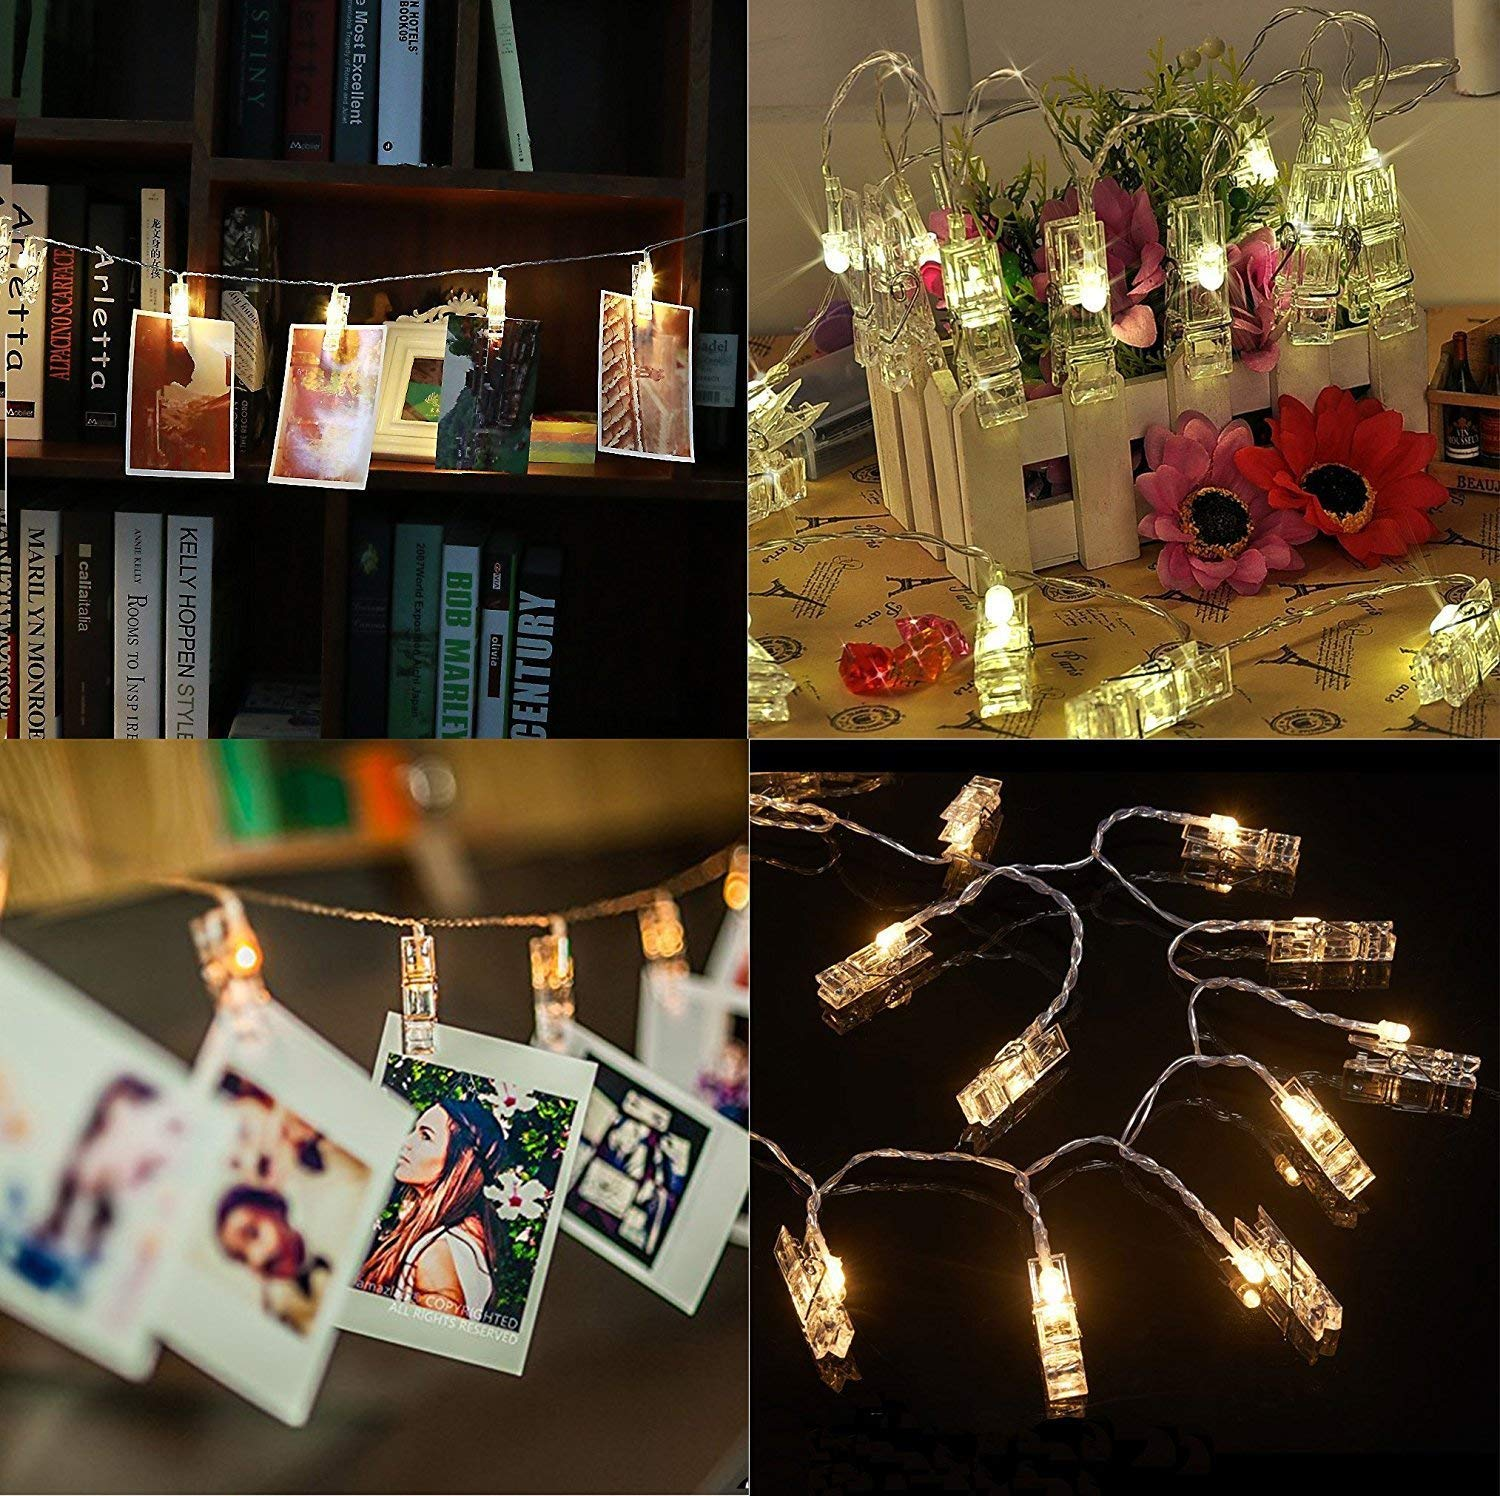 2 pack Halloween Decoration 40 LED Photo Clips String Lights Battery Operated Waterproof 20ft Fairy Light Long Lasting Indoor Girls Bedroom Hang Picture Outdoor Wedding Party Christmas Birthday Gift by Symfury (Image #7)